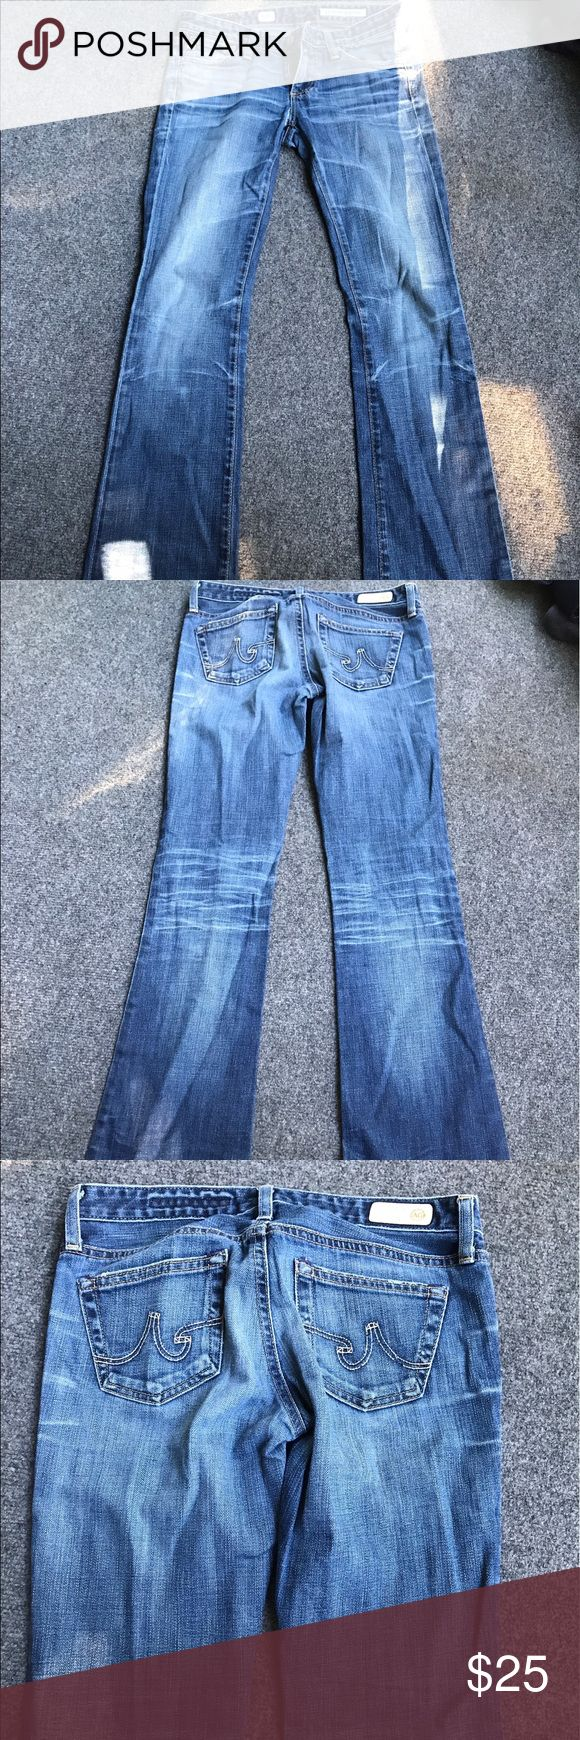 Size 25 Adriano Goldschmied Bootcut Jeans 25 AG Adriano Goldschmied Jeans Boot Cut